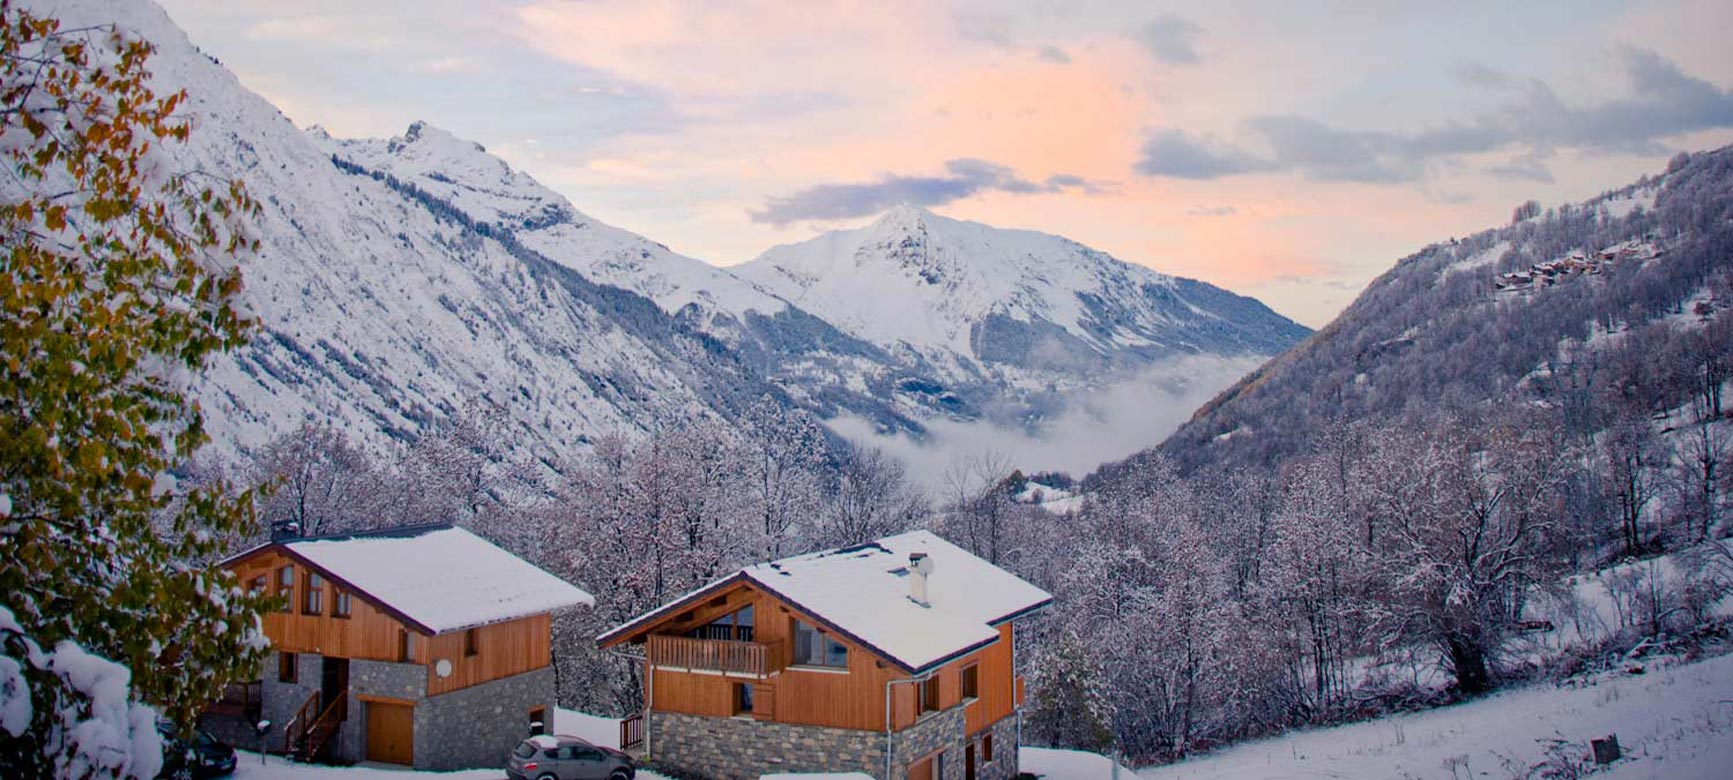 spectacular Mountain Views From Chalet Alpage, Our Luxury Catered Chalet in St Martin de Belleville